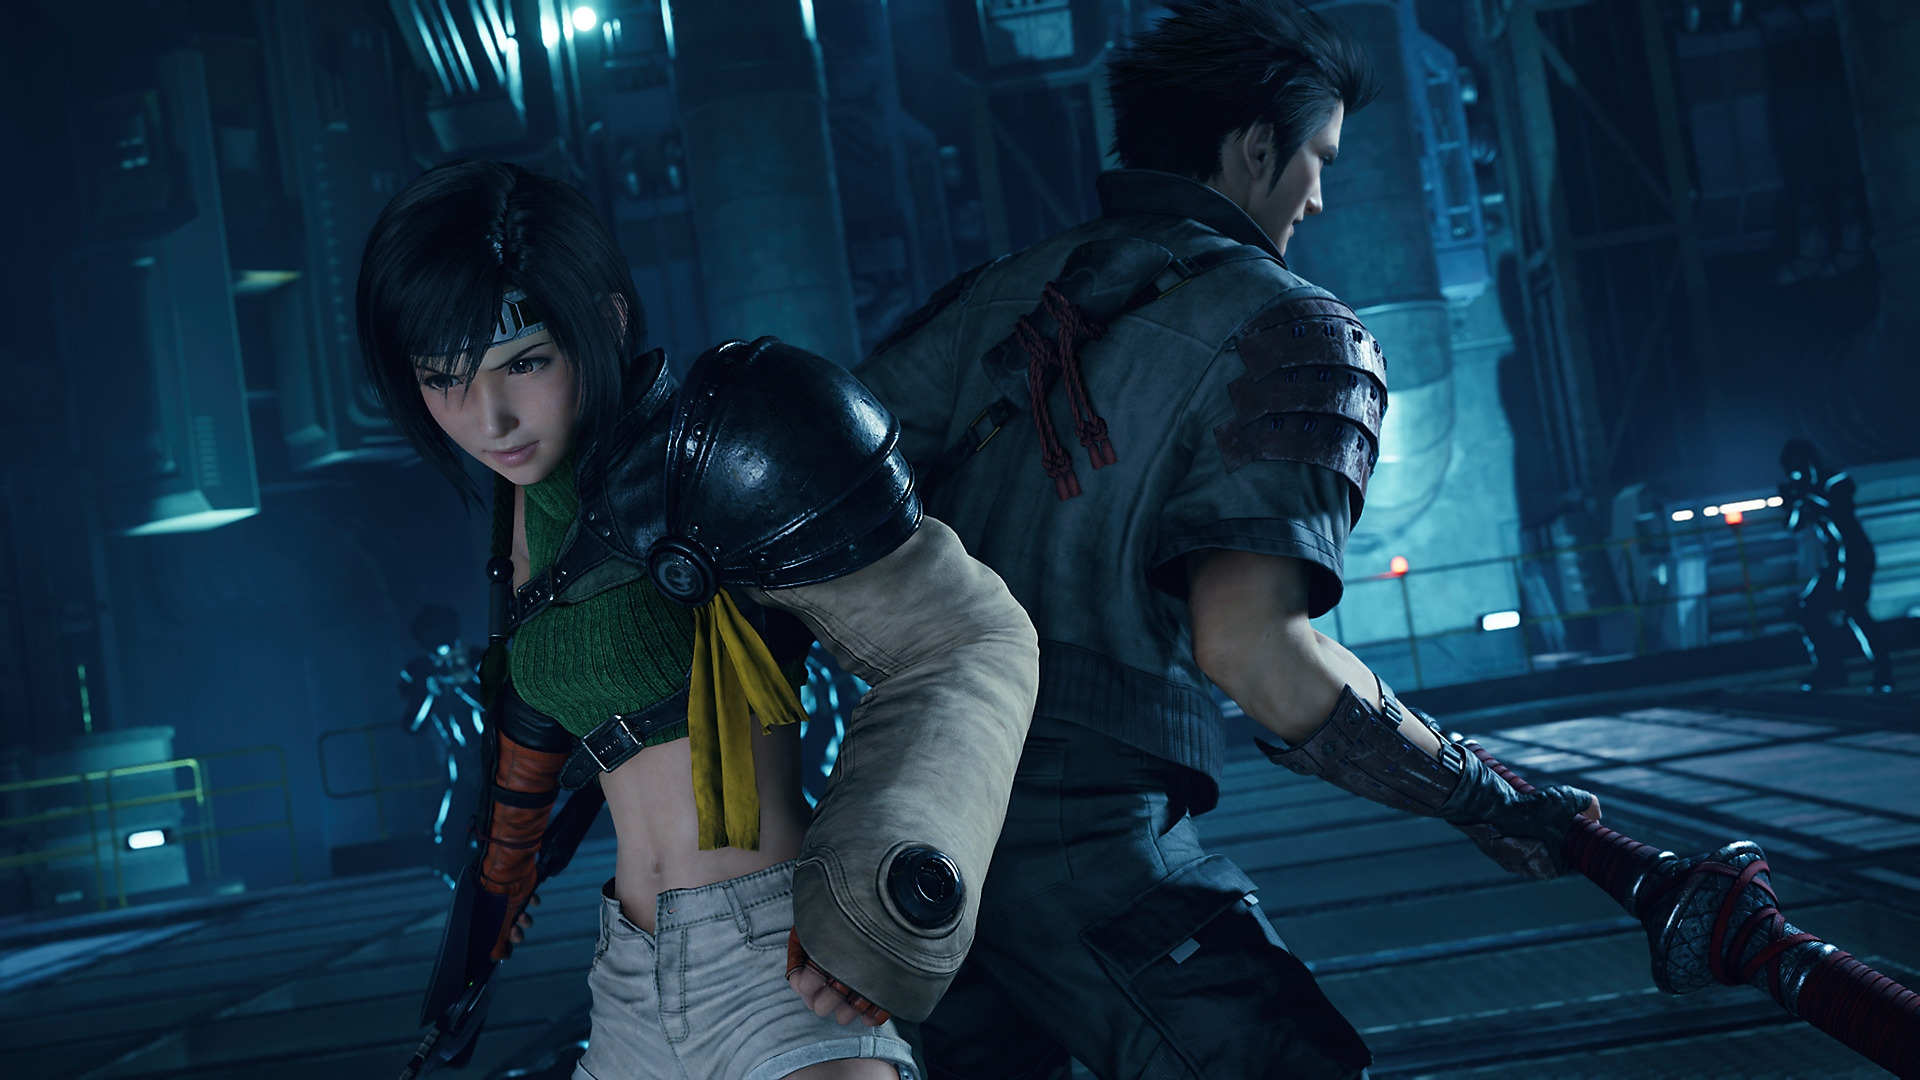 Final Fantasy VII Remake Intergrade - Galerijscreenshot 1